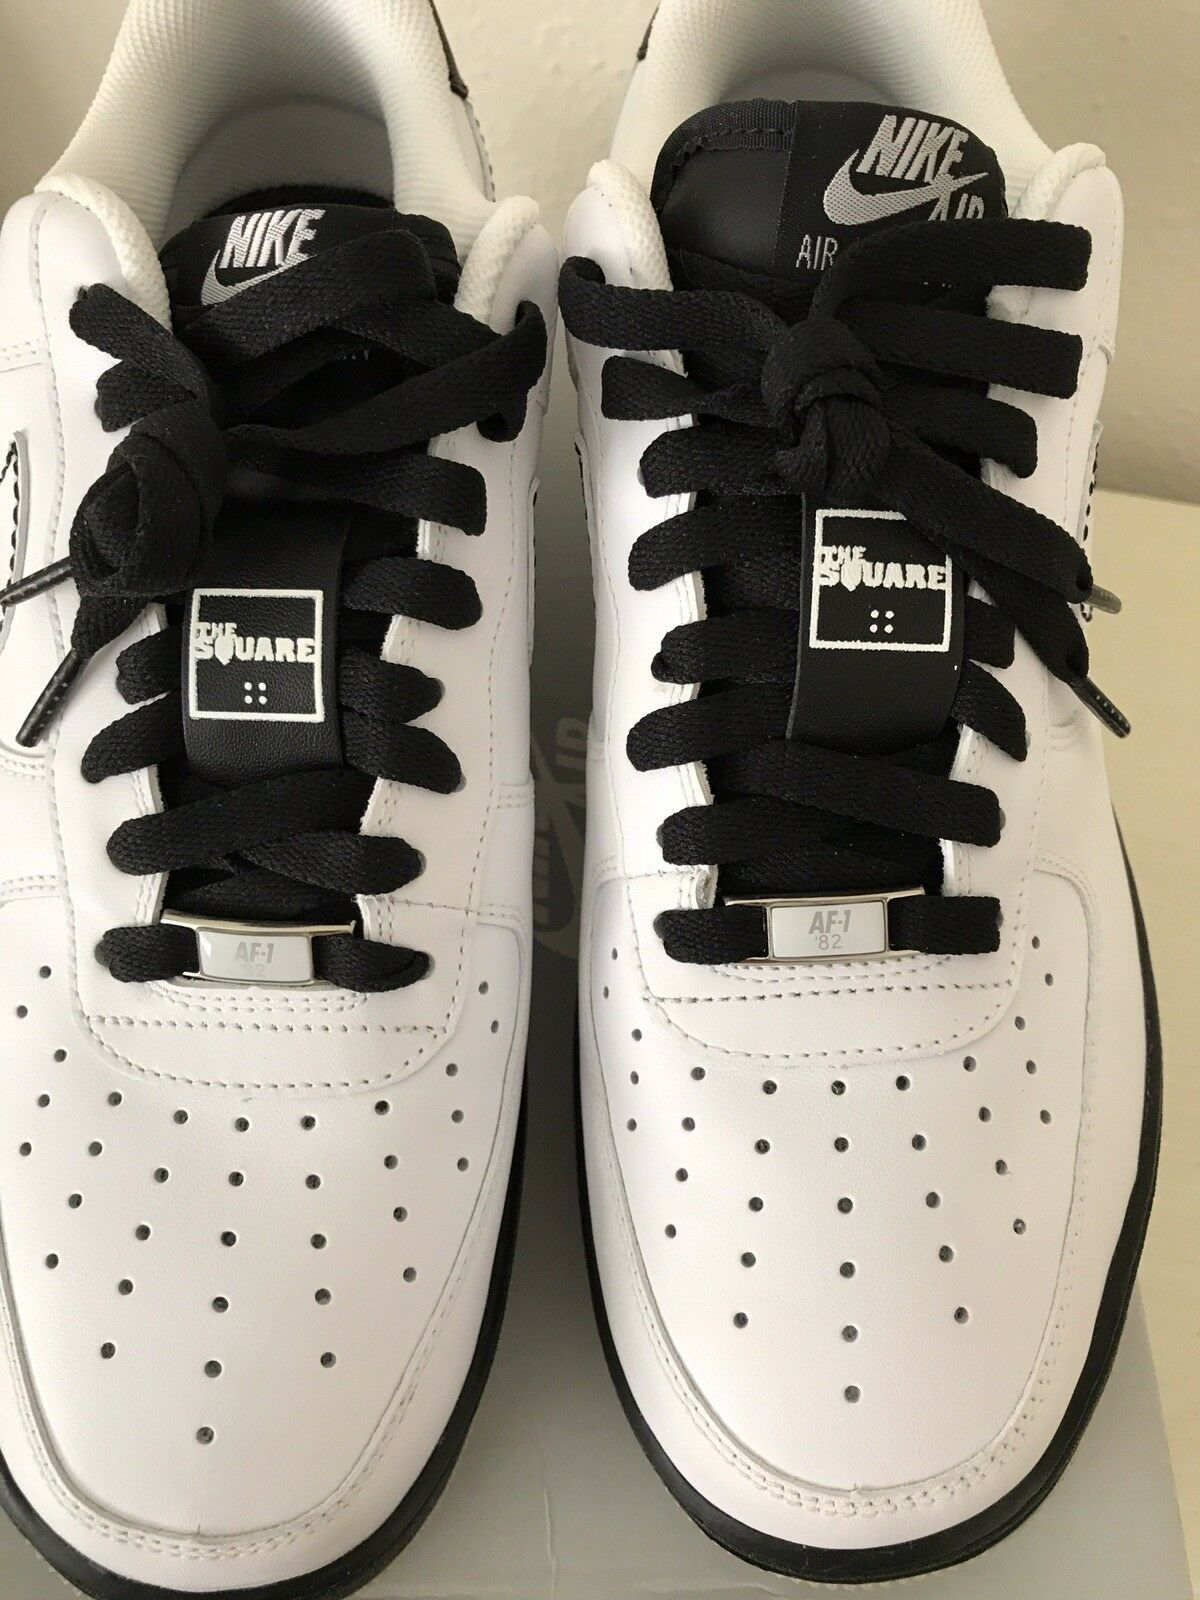 nike air force 1 1 force '07 taille 9,5 315122112 cheptel mort blanc / noir fd67fb